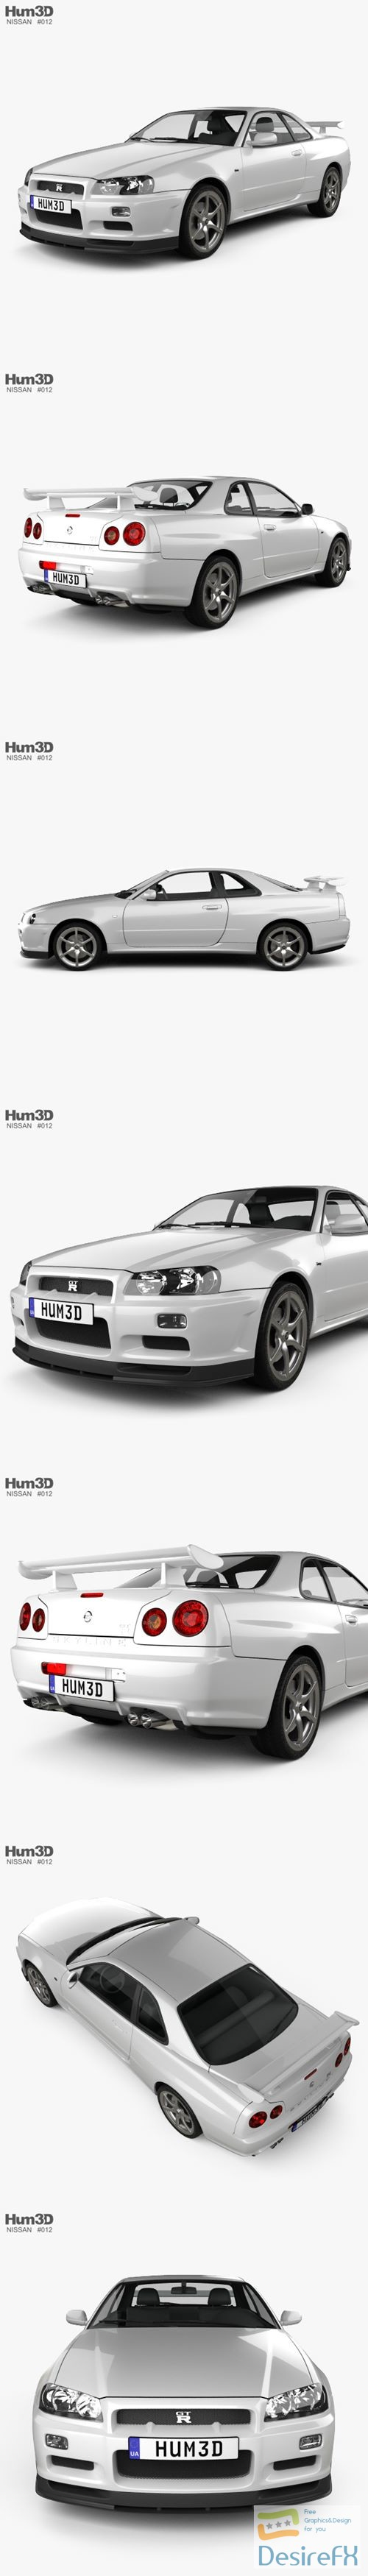 3d-models - Nissan Skyline R34 GT-R coupe 1999 3D Model